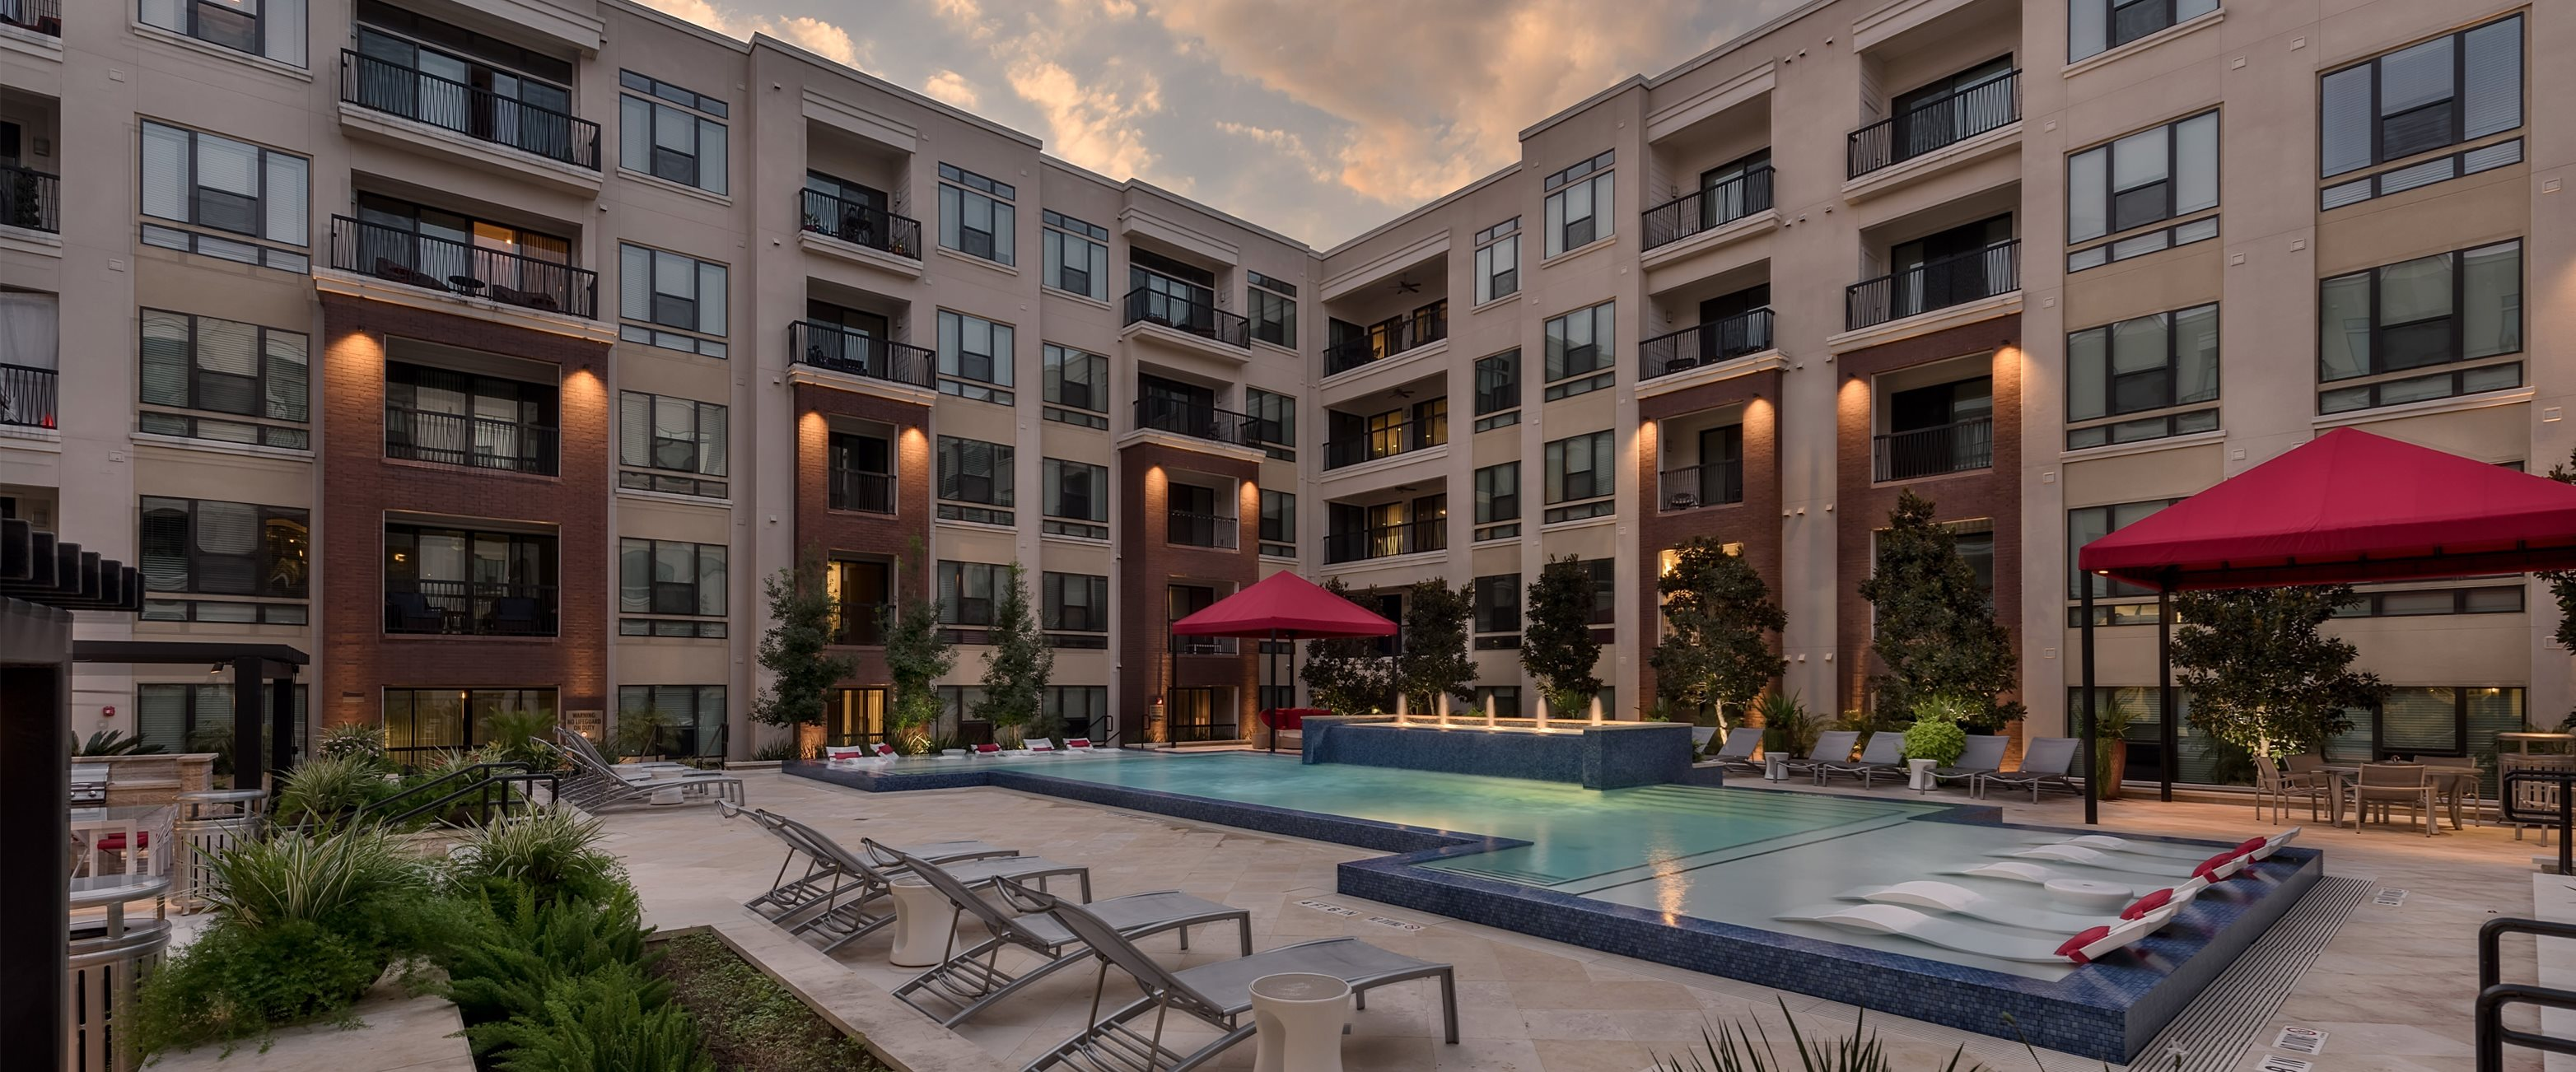 Pool During Sunset at Ascent at CityCentre Apartments in Houston, Texas